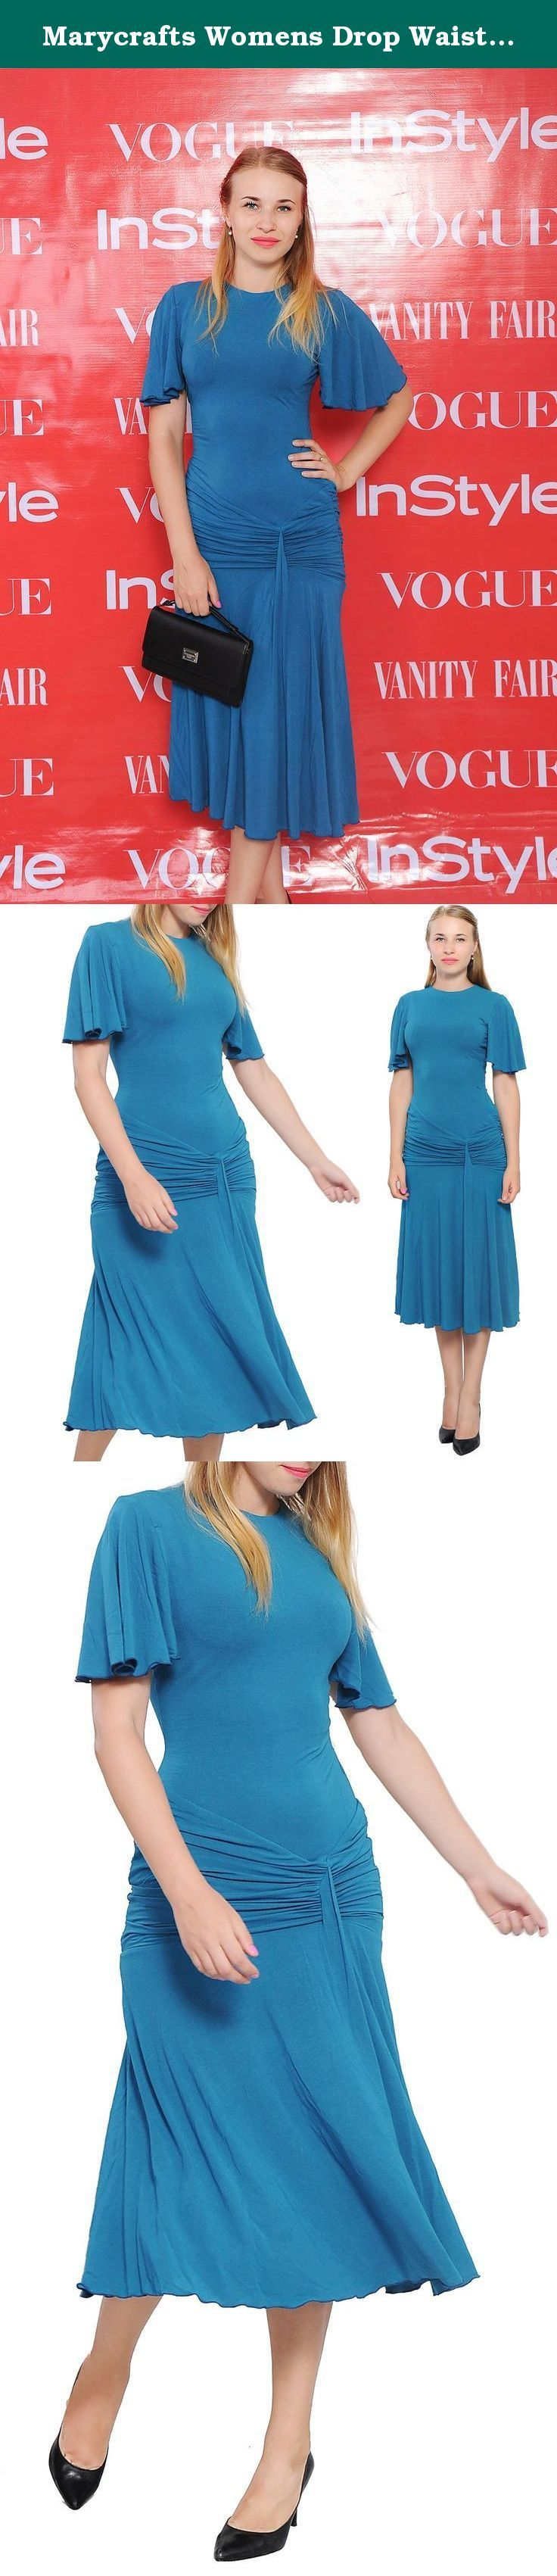 "Marycrafts Womens Drop Waist Midi Dress Flapper Vintage Retro 1920s 16 Teal. Extremely elegant dress for lady, with design inspired by vintage 1920s style, it features short butterfly sleeves, round neck, drop decoration waist, pleated fish tail skirt, midi length. It is made of luxury ponte di roma fabric. Dry washing prefered, machine washable (but less durable). Photos say it all. Length (from shoulder): ~50"" (125 cm) Regular fit, short butterfly sleeves, round neck, drop decoration…"